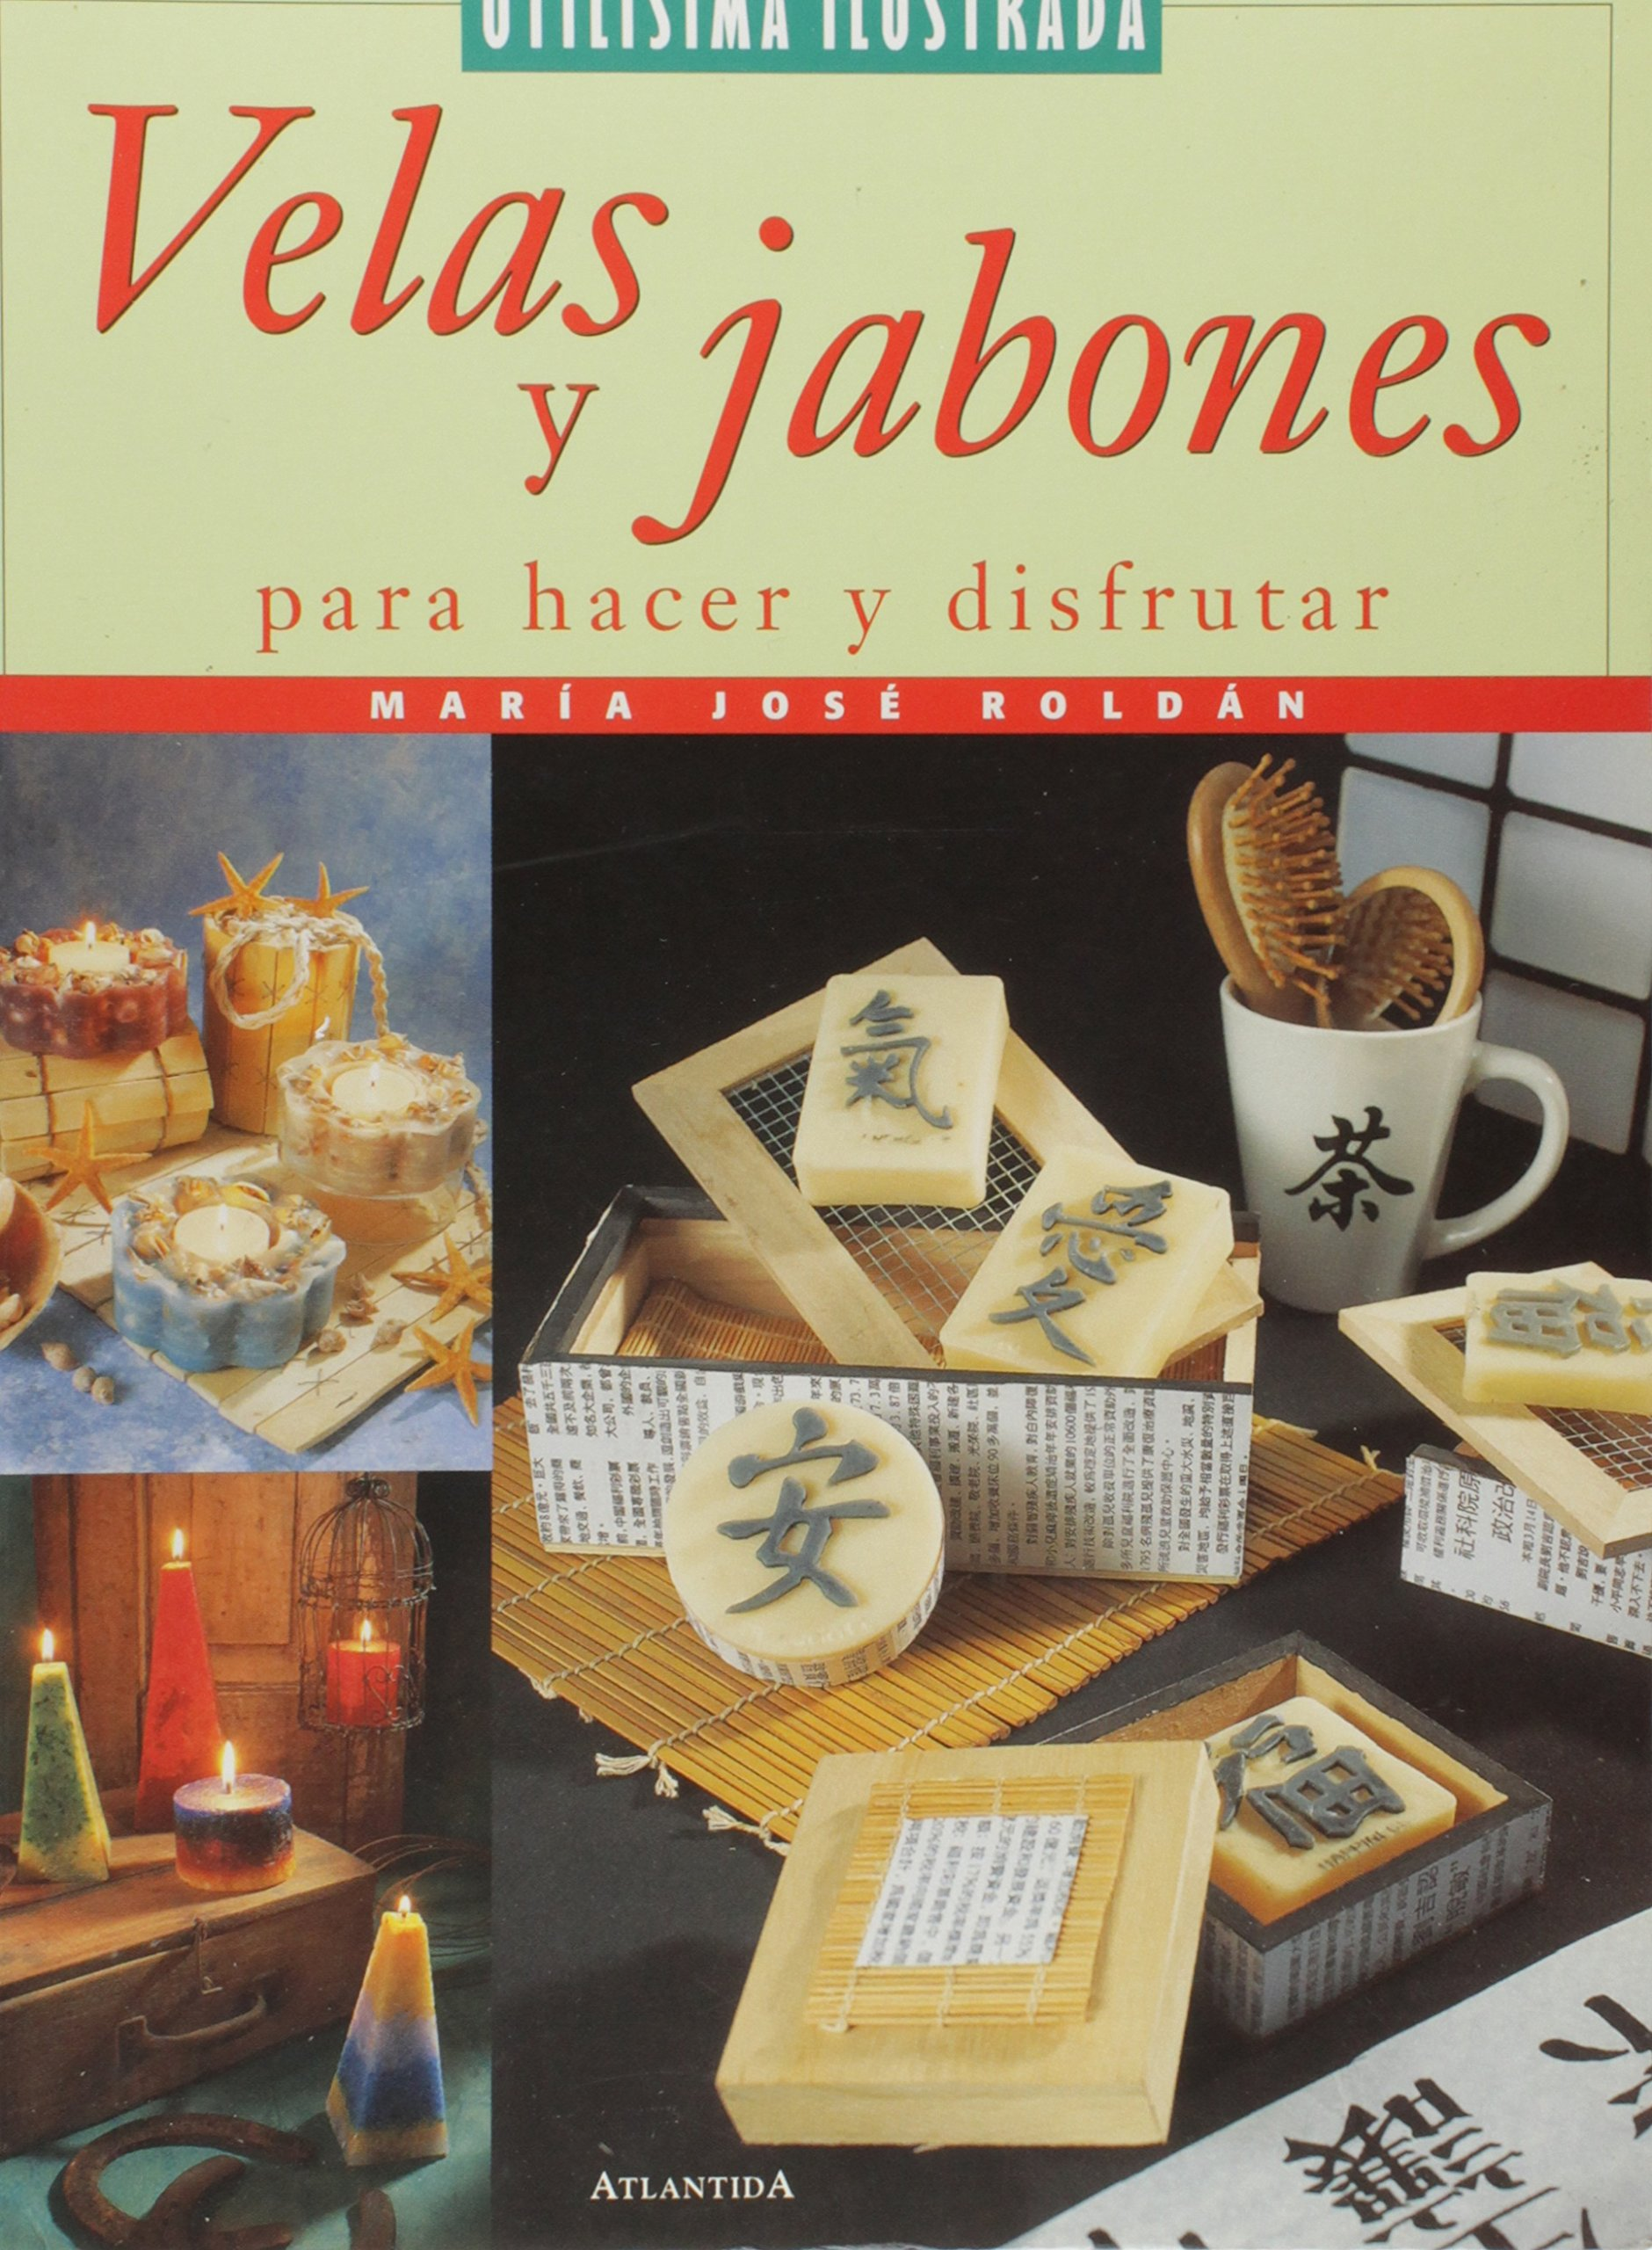 Velas Y Jabones: Para Hacer Y Disfrutar (Spanish Edition) (Spanish) Paperback – Illustrated, December 1, 2001